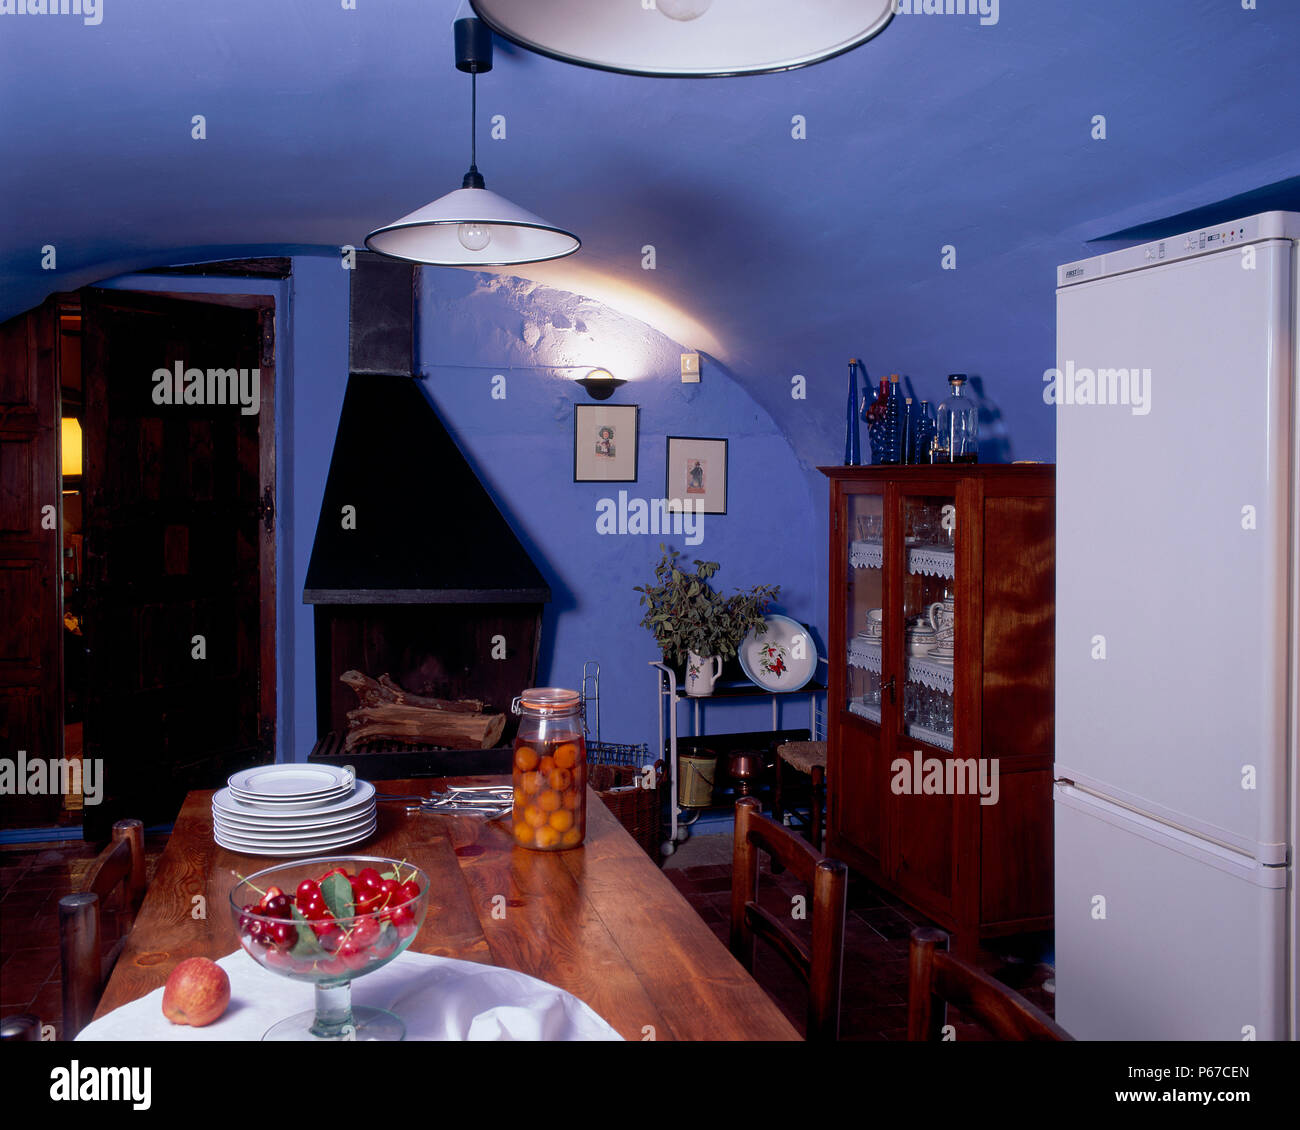 View of an eclectic dining room - Stock Image